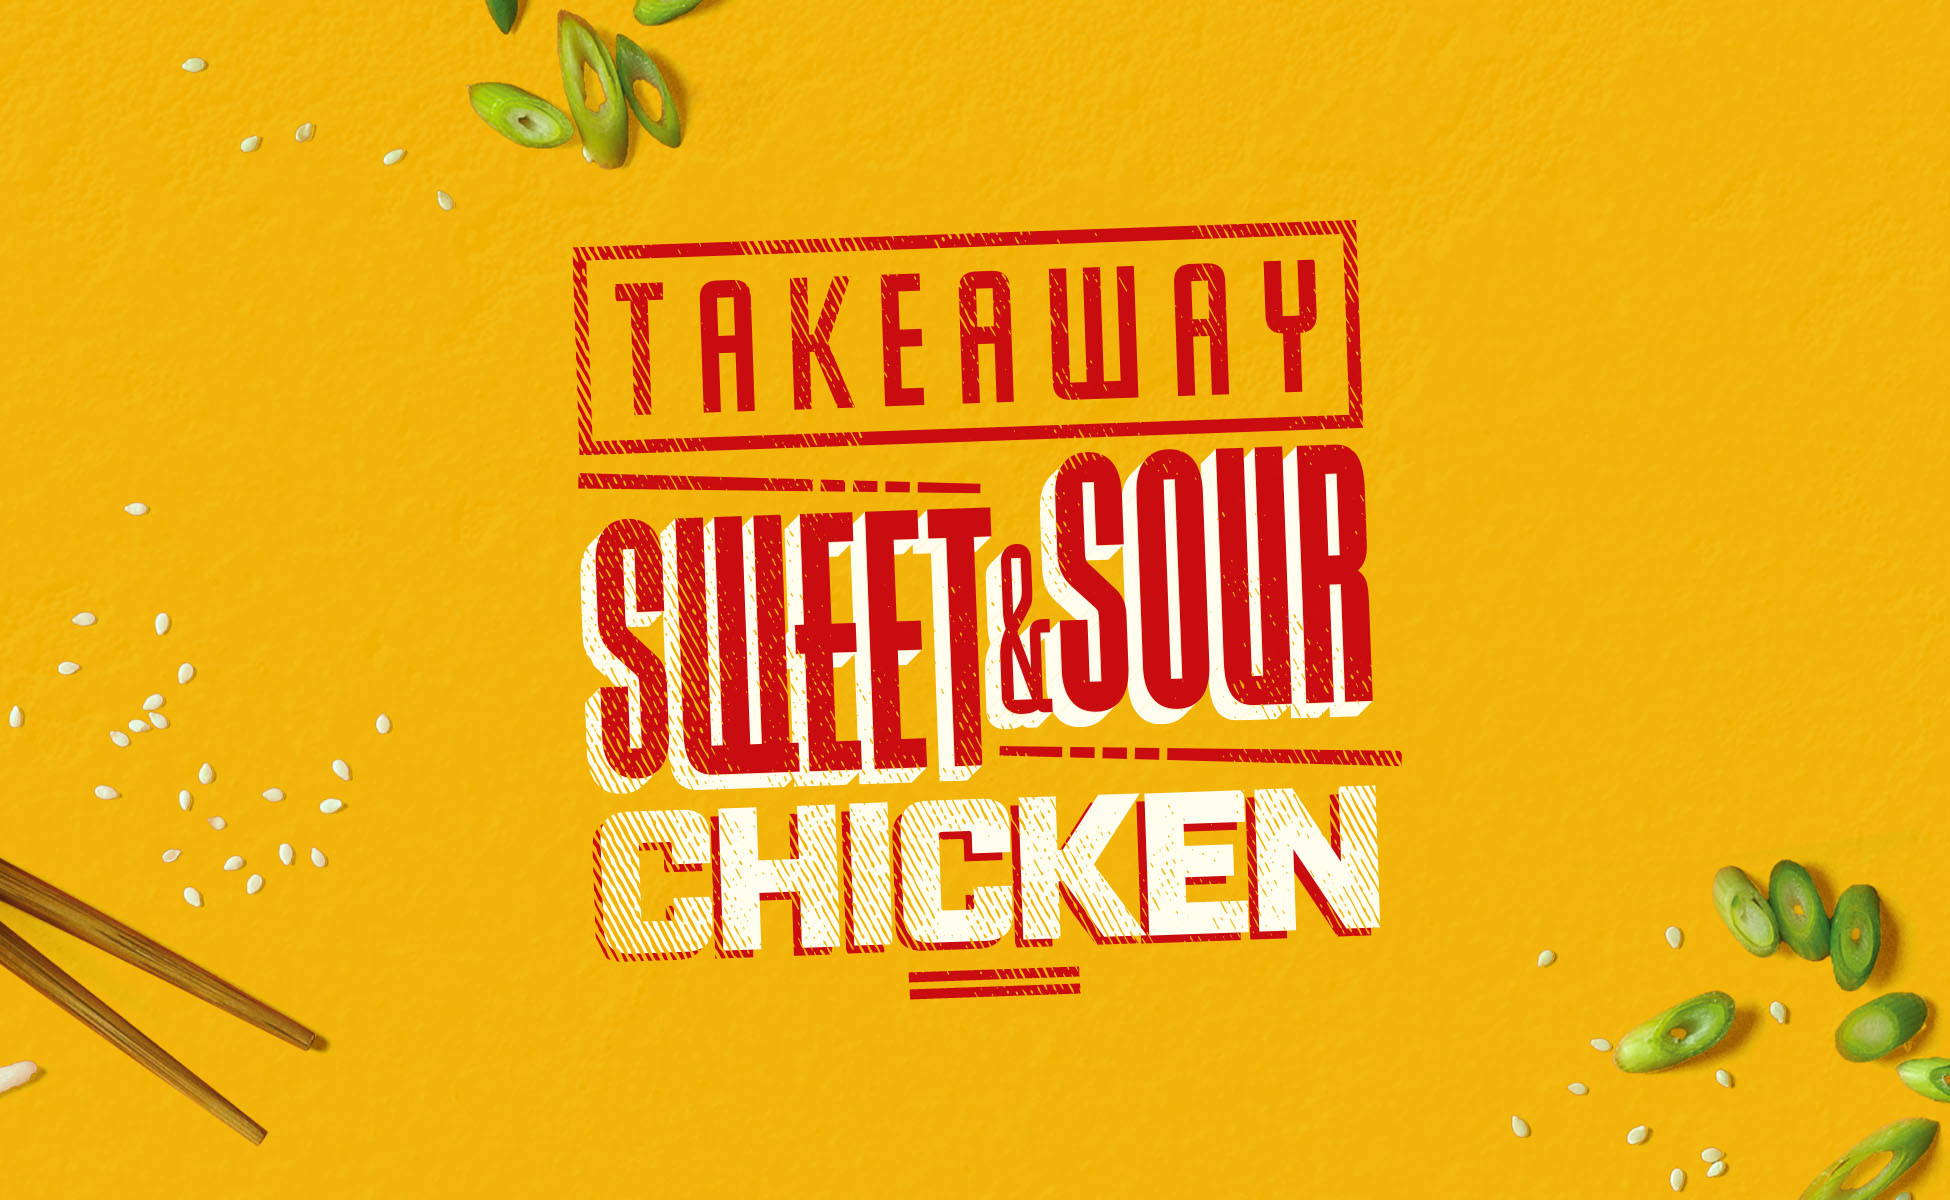 Creative takeaway typography